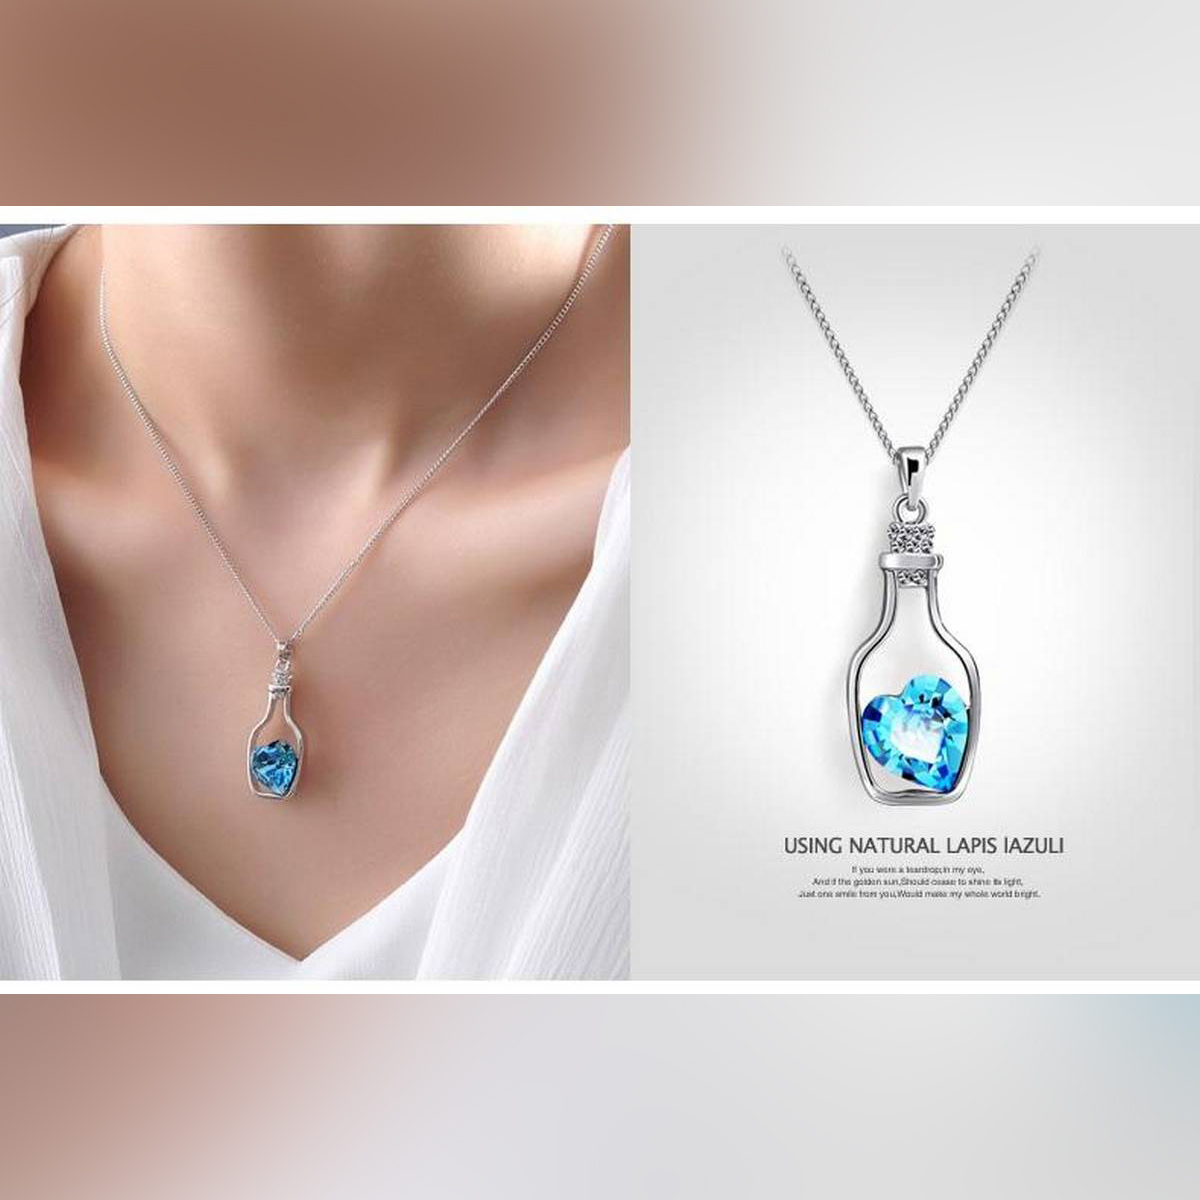 Luxuries Style Tiny glass Bottle Necklace. love potion bottle. necklace for girl, Cute Necklace, heart necklace, gift for women, Crystal Heart Pendant Necklace,